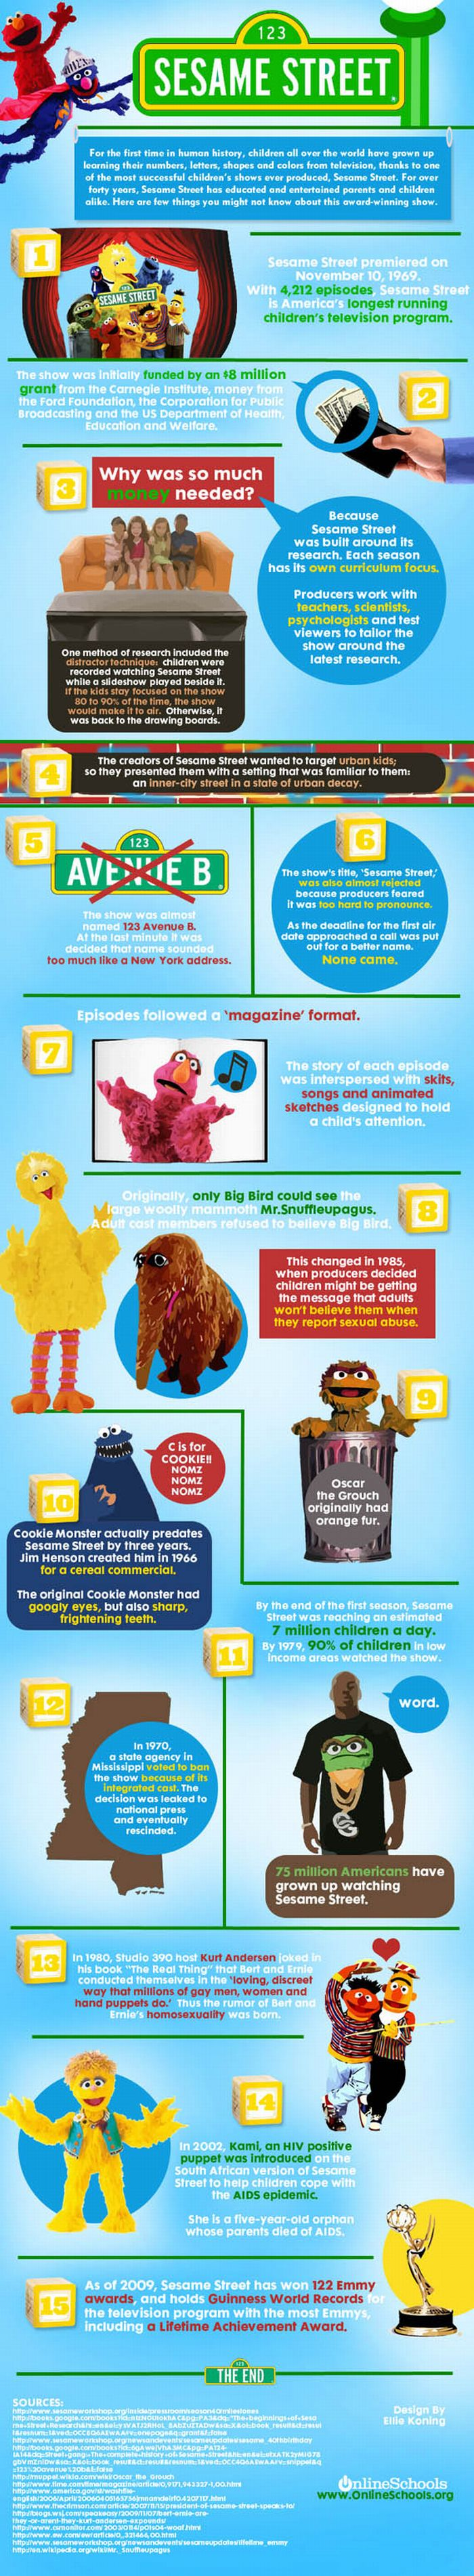 15 Things You May Not Know About Sesame Street